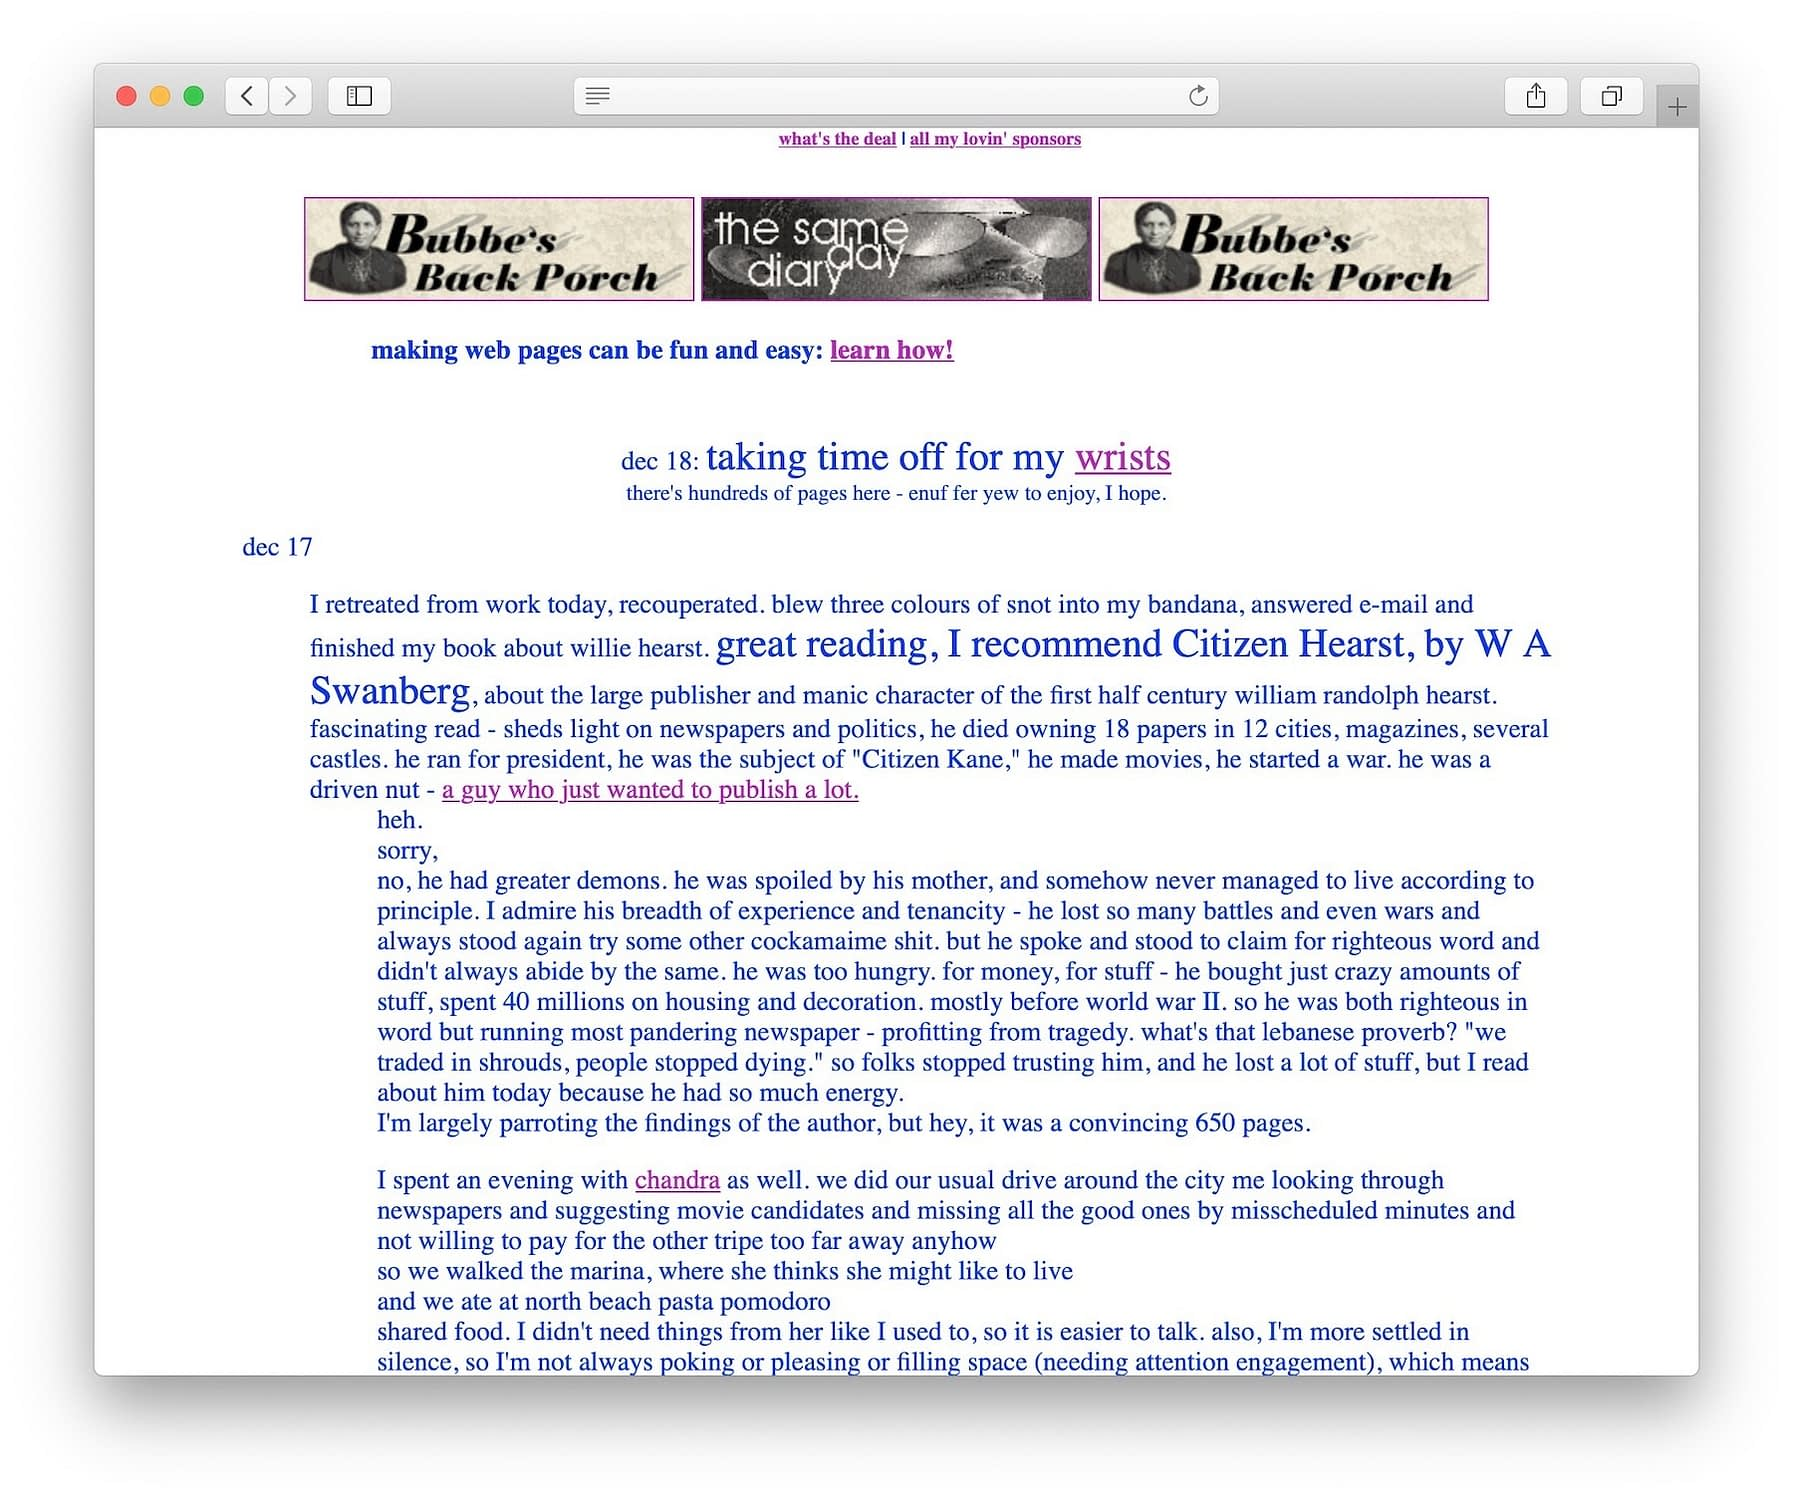 The history of blogging starts with Links.net